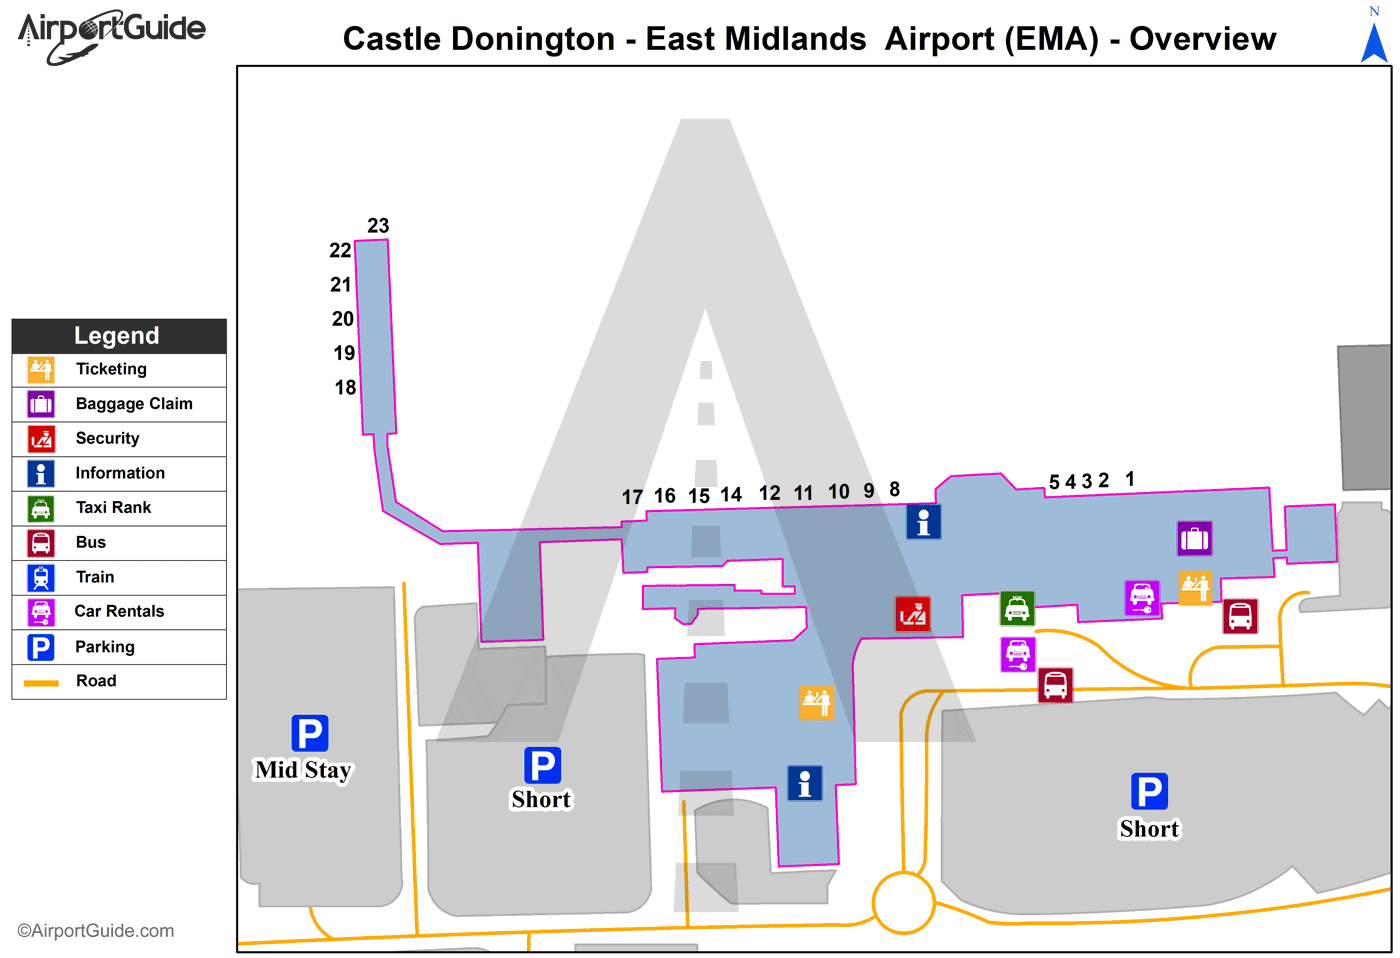 Castle Donington - East Midlands (EMA) Airport Terminal Map - Overview